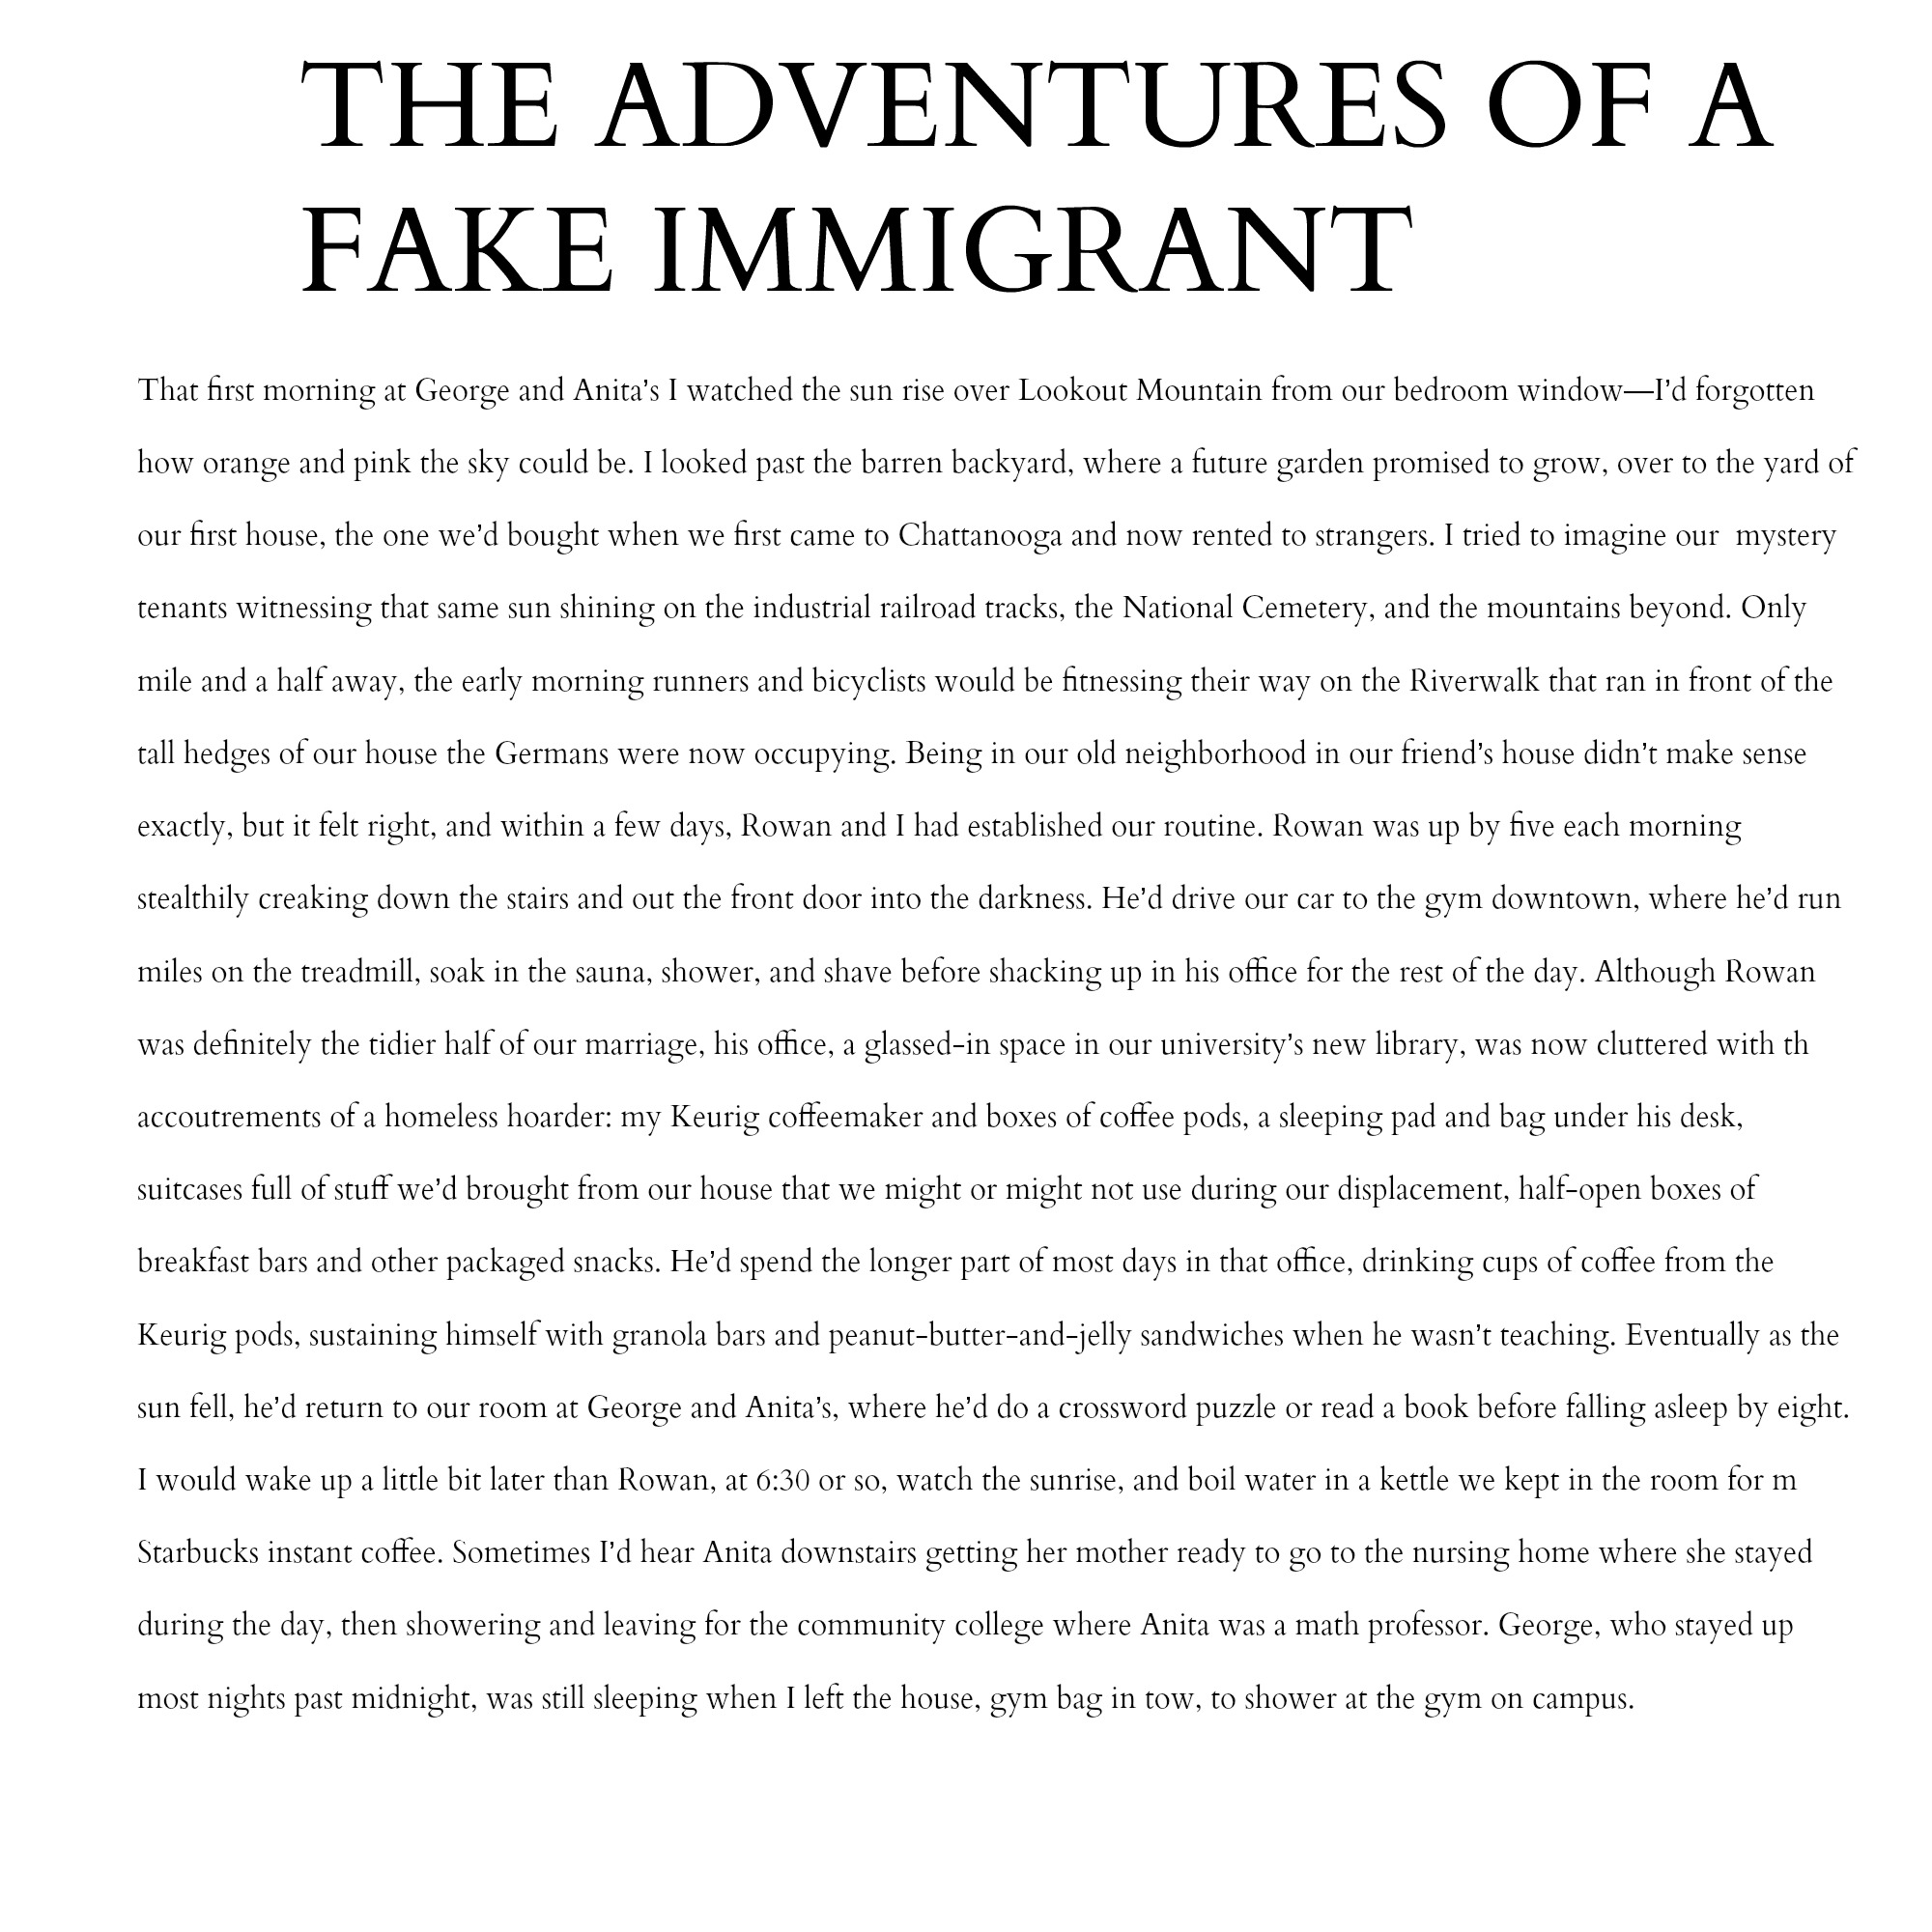 immigration now and then essay